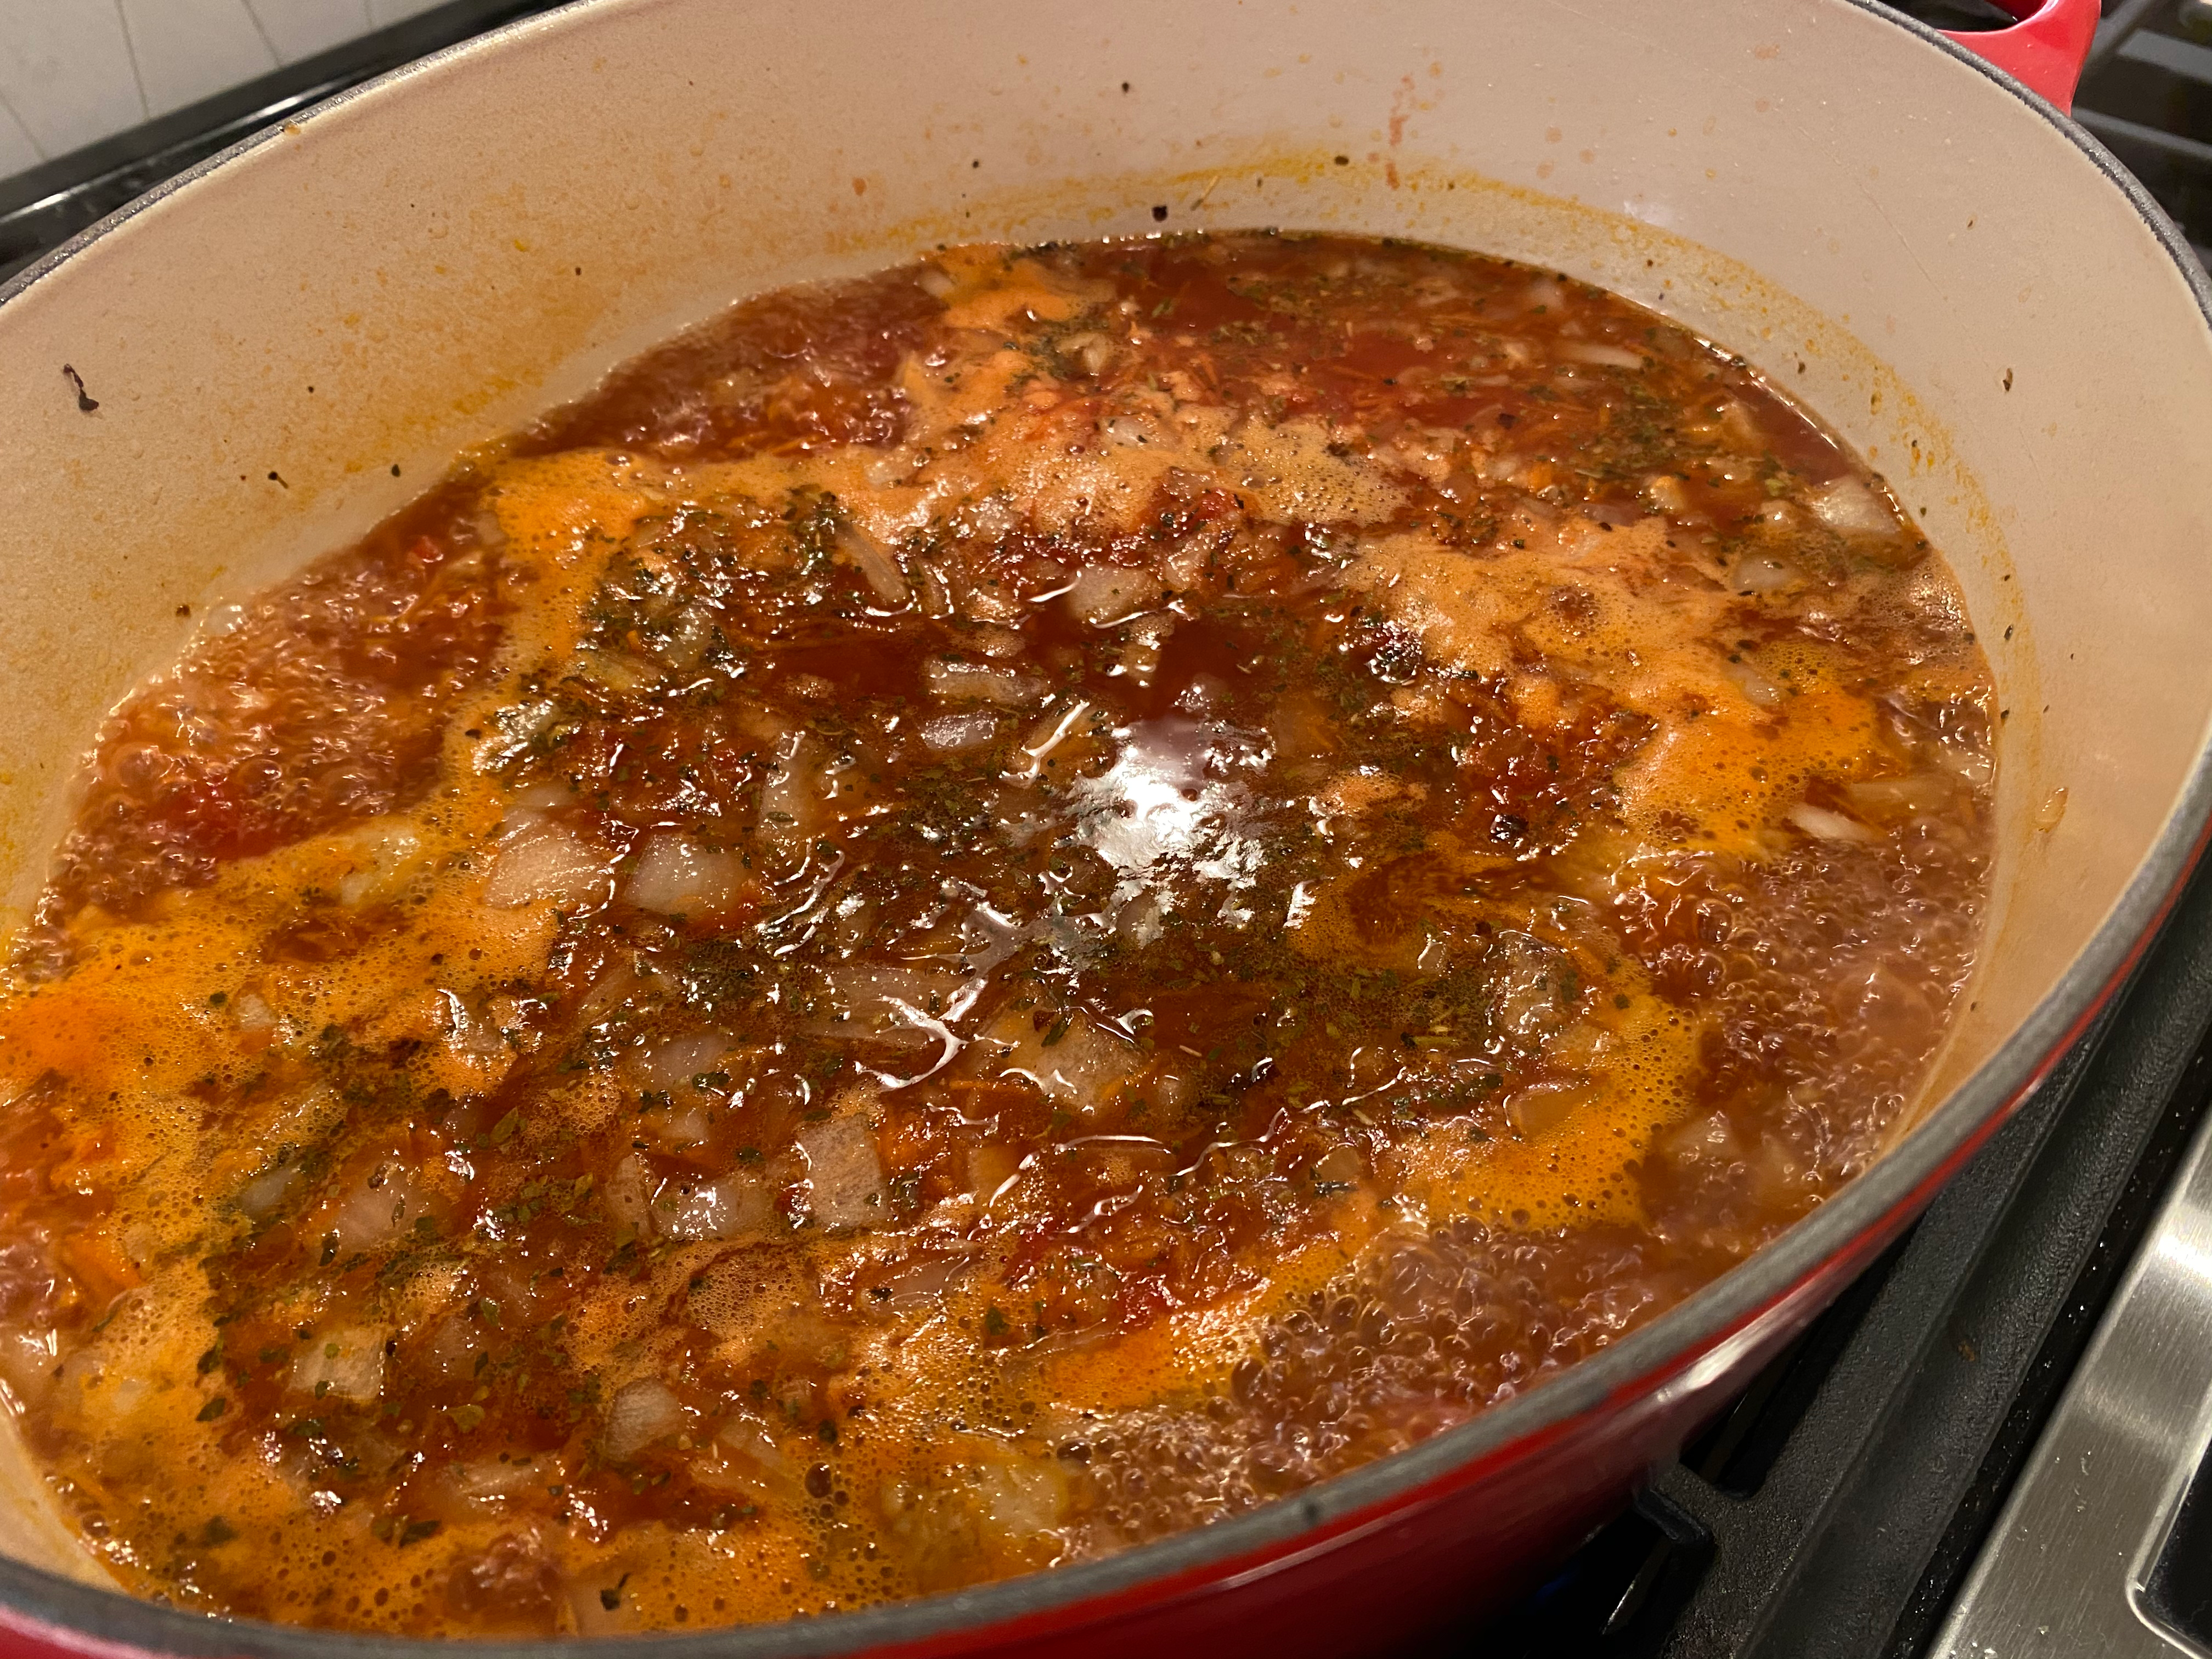 Adding the Soup Base Plus the Drained Italian Sausage then Letting Reduce